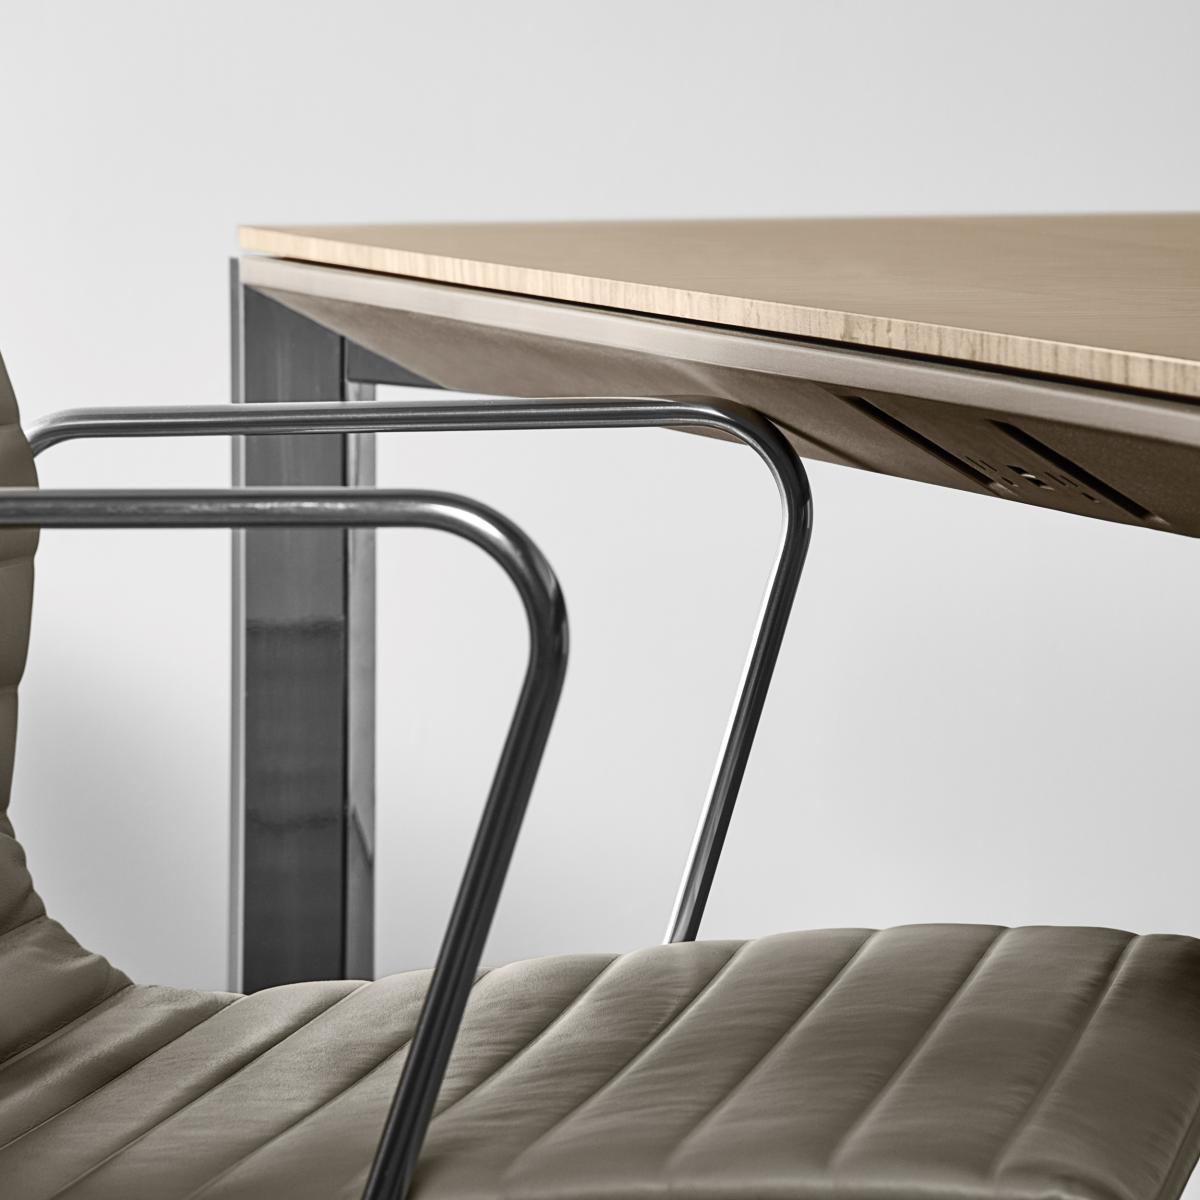 Halo's revolutionary soft edge protects both table and chair from damage.